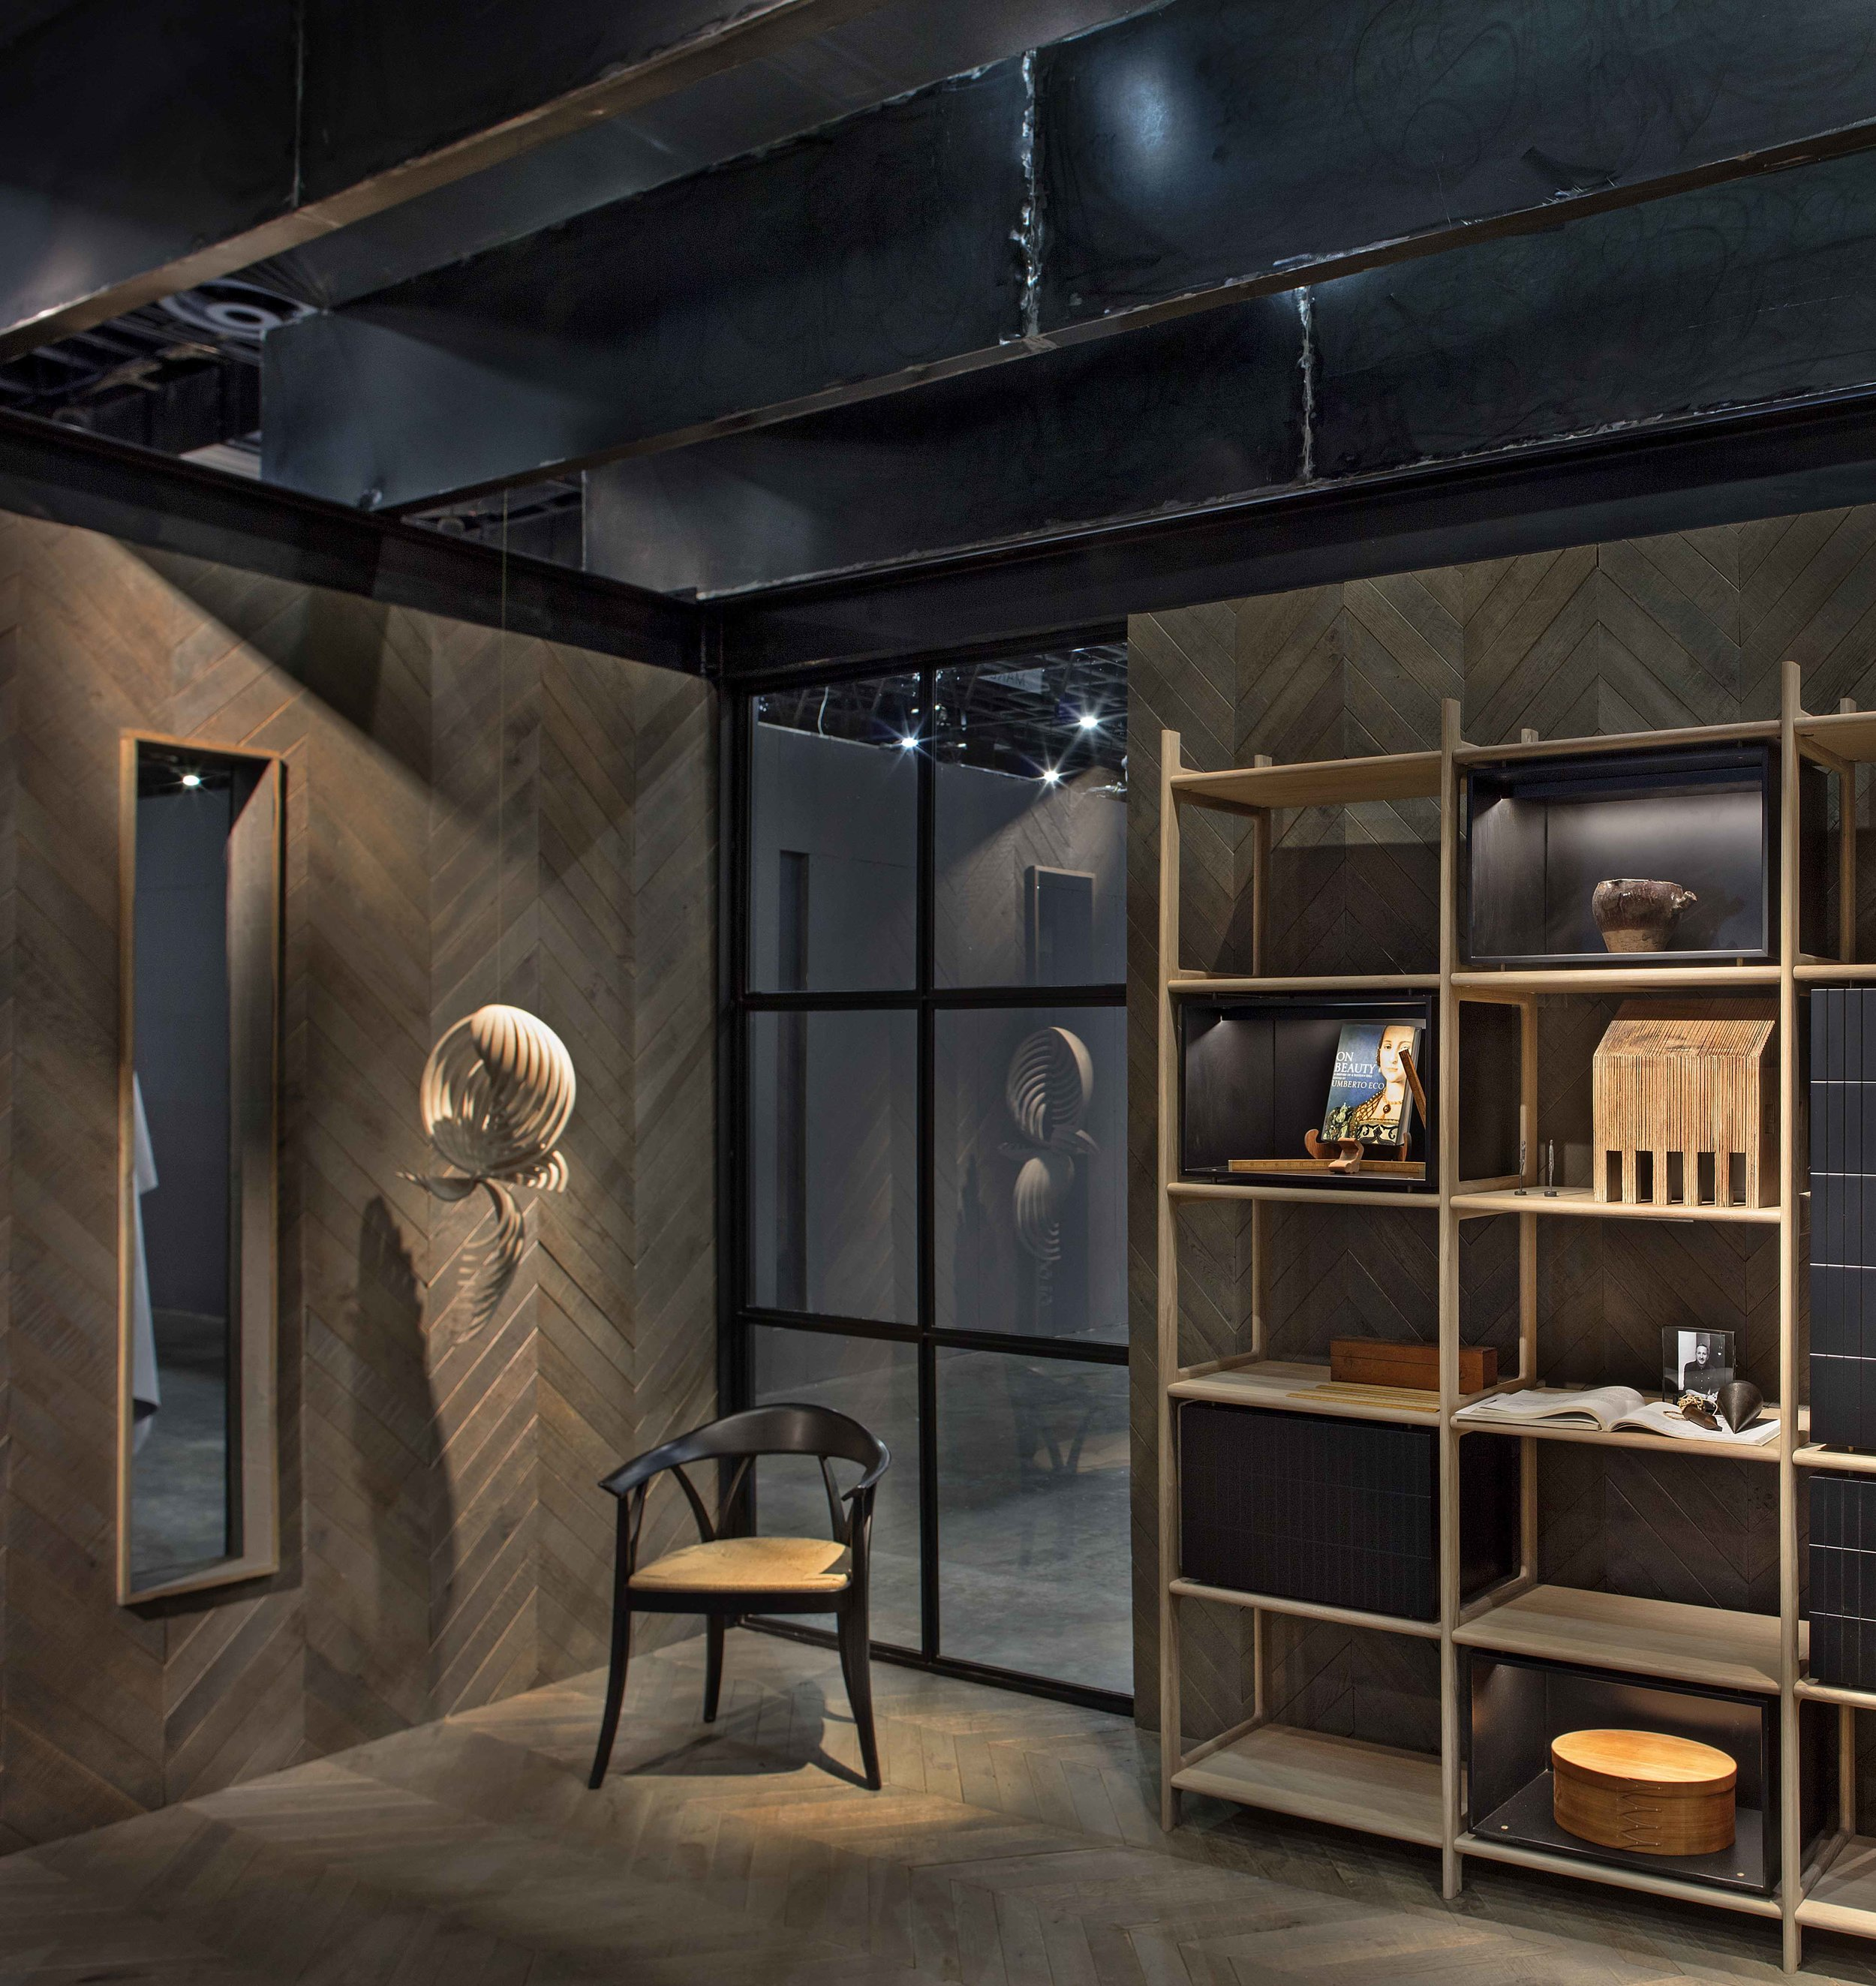 JVR Architects Rooms on View 14 05 2017_int 5 cu pan.jpg